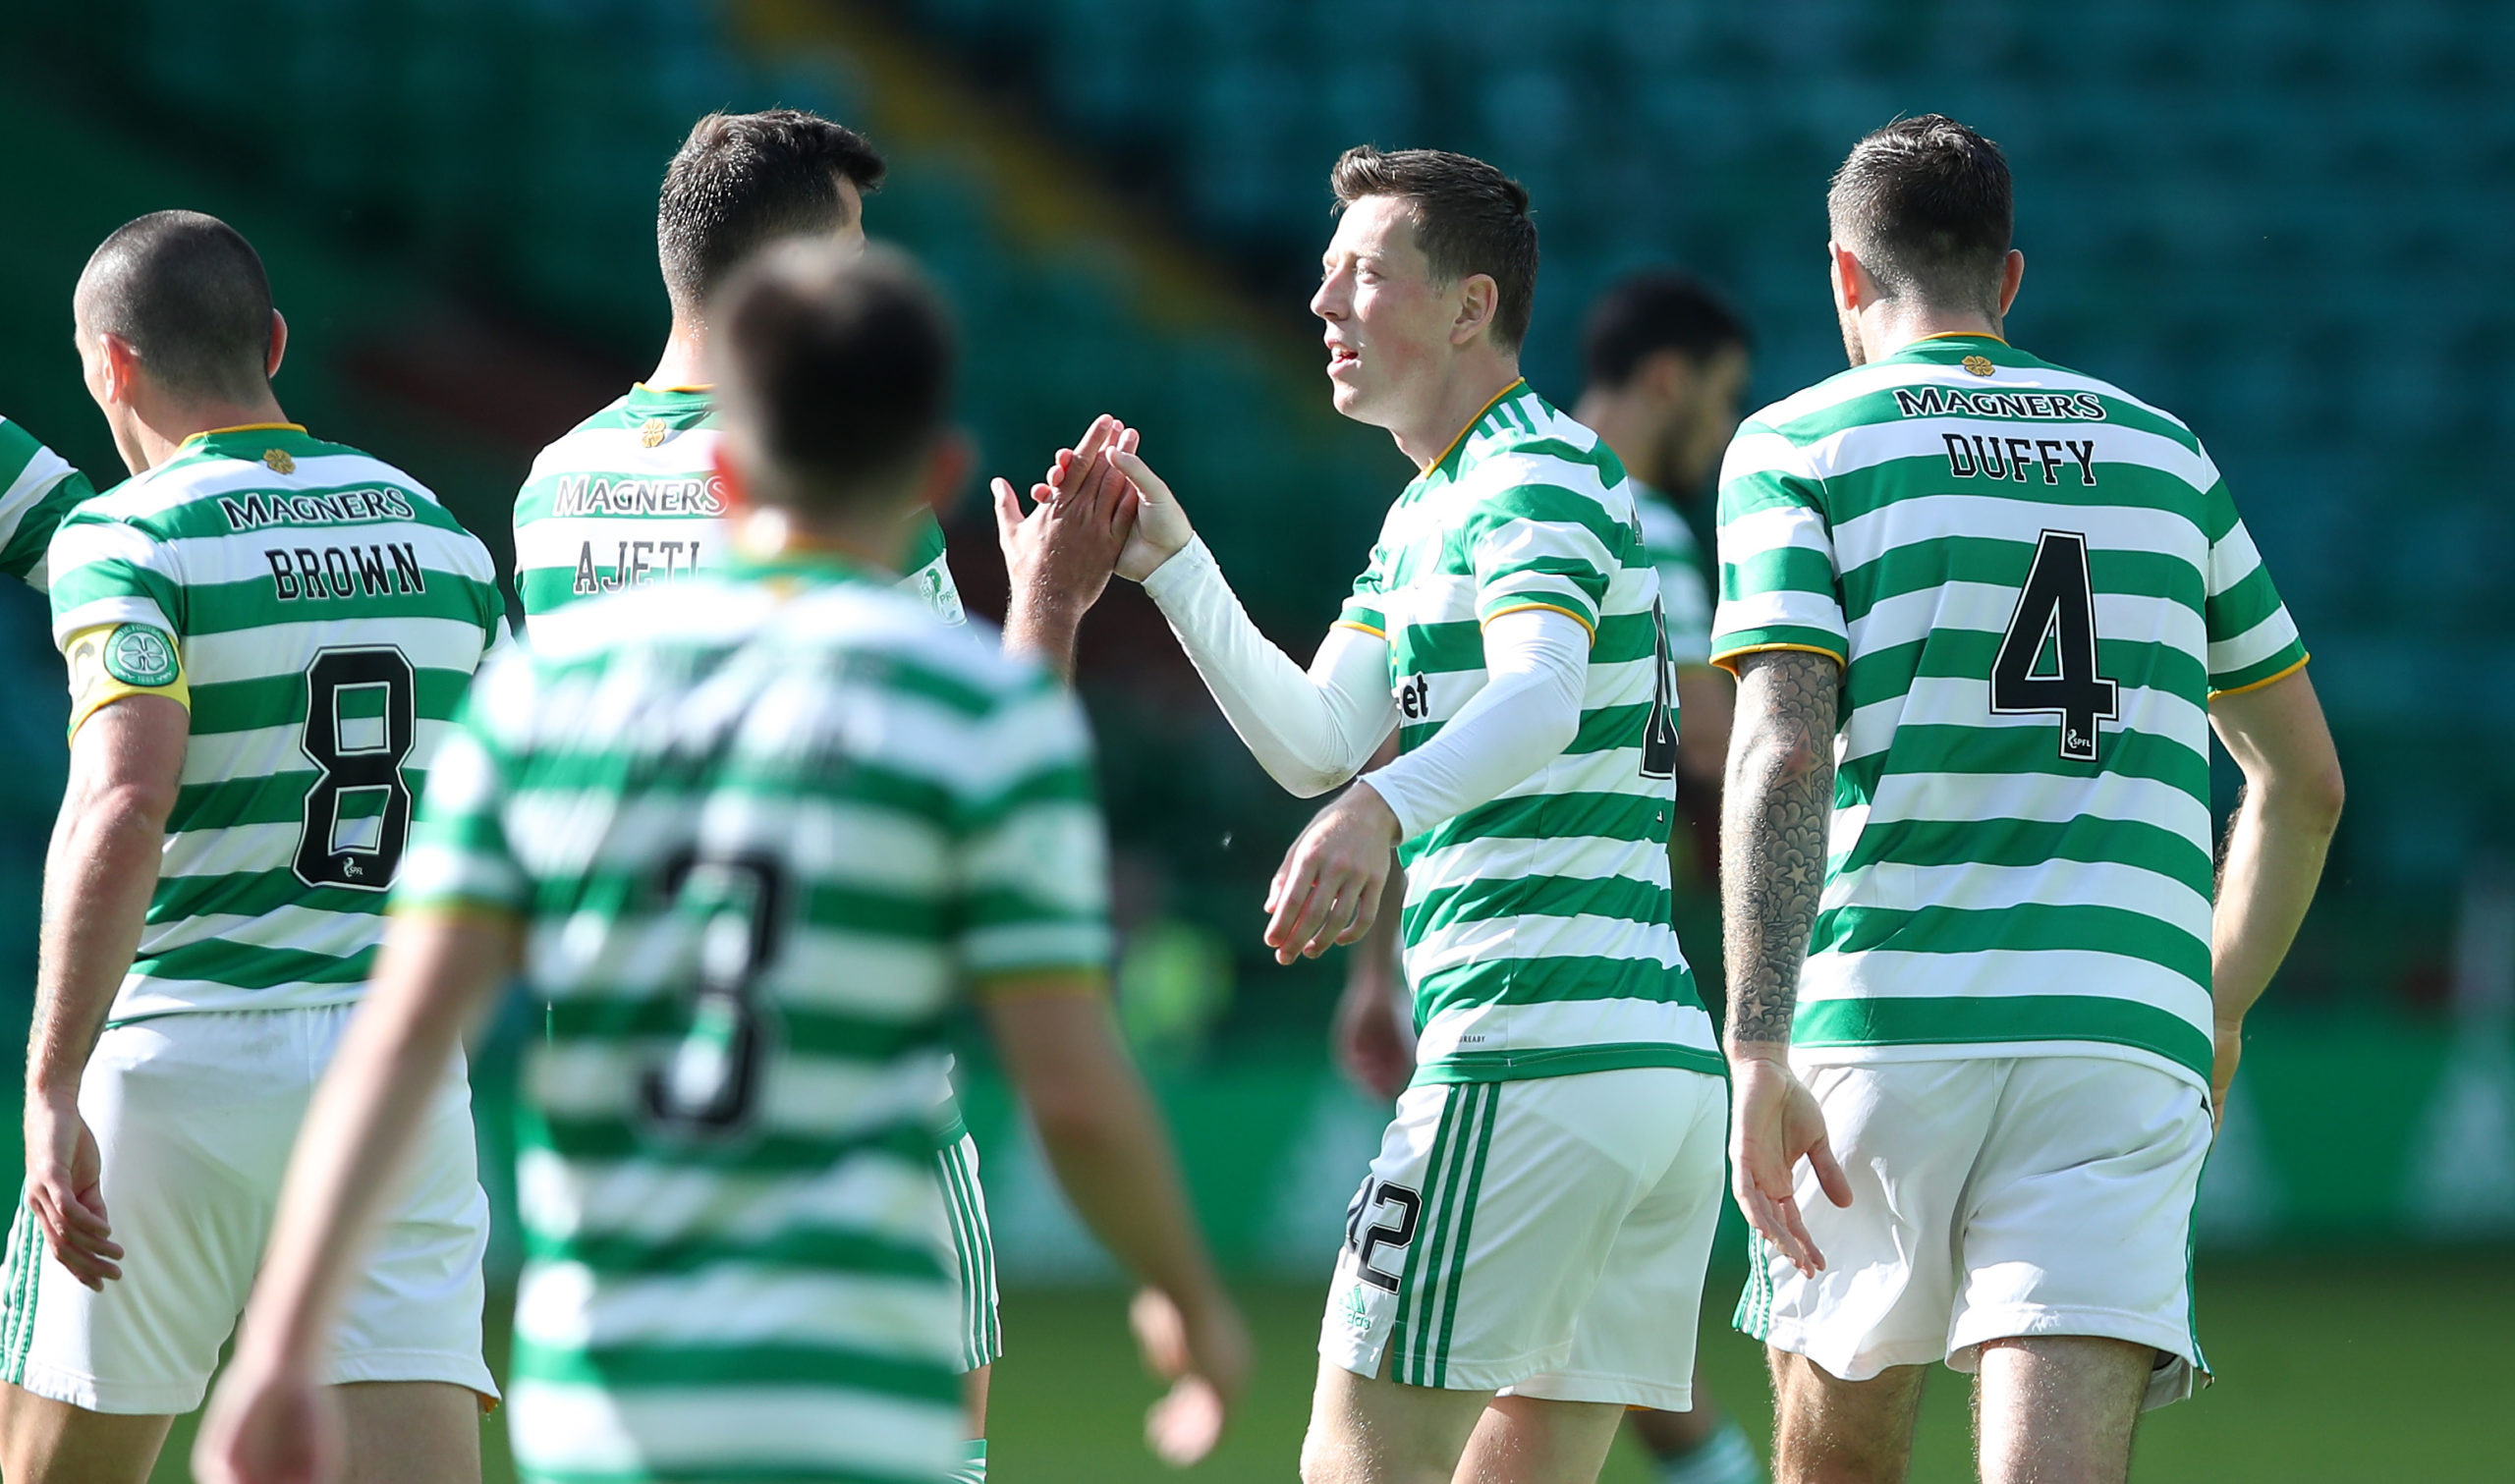 Celtic eventually overcame Livingston on Saturday